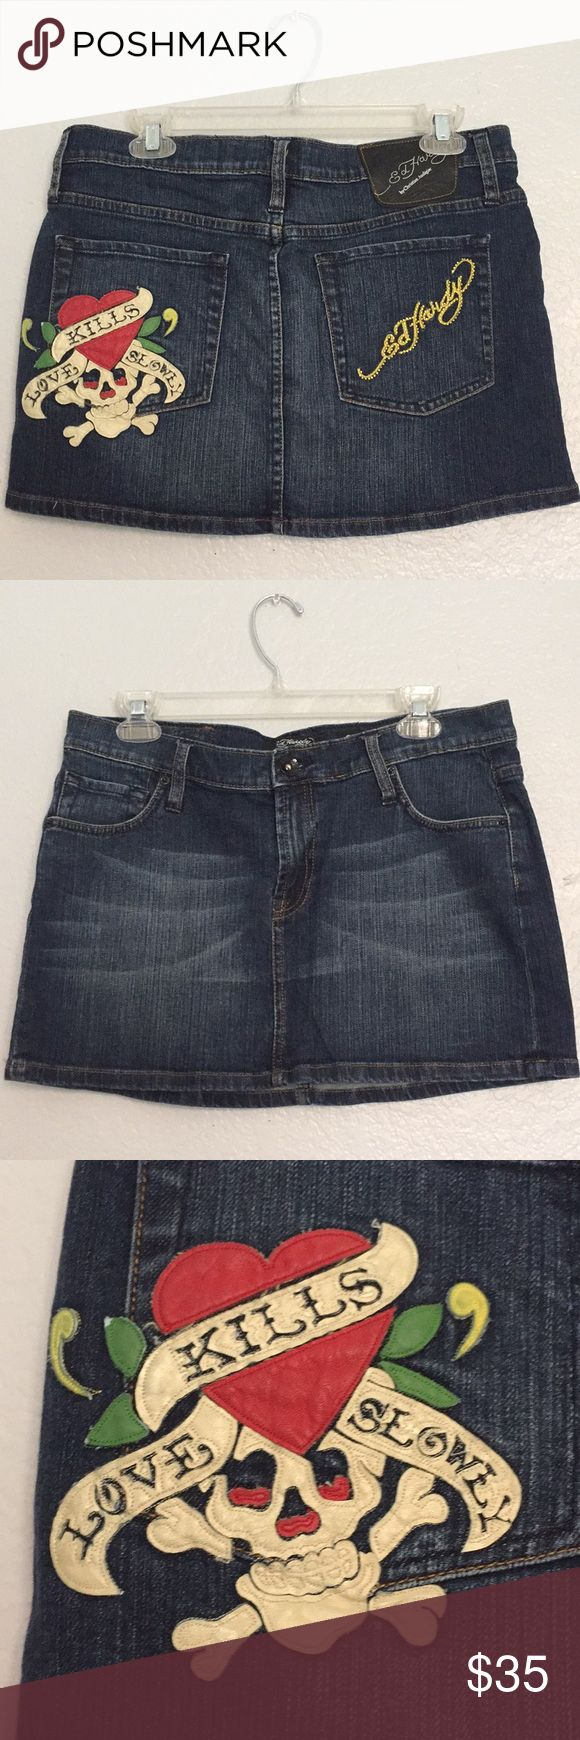 """Ed Hardy Jean Skirt Size 31. Ed Hardy Jean Skirt. Length 12"""" front 13 1/2"""" Back. Waist laying flat measures 17 3/4"""" across.Preowned and in excellent shape. Patch on pocket says Love Kills Slowly. Other pocket signature with jewels. Leather patch on waistband. Button and zipper fly closure. Please view all photos. 99% Cotton 1% Elastane Ed Hardy Skirts"""